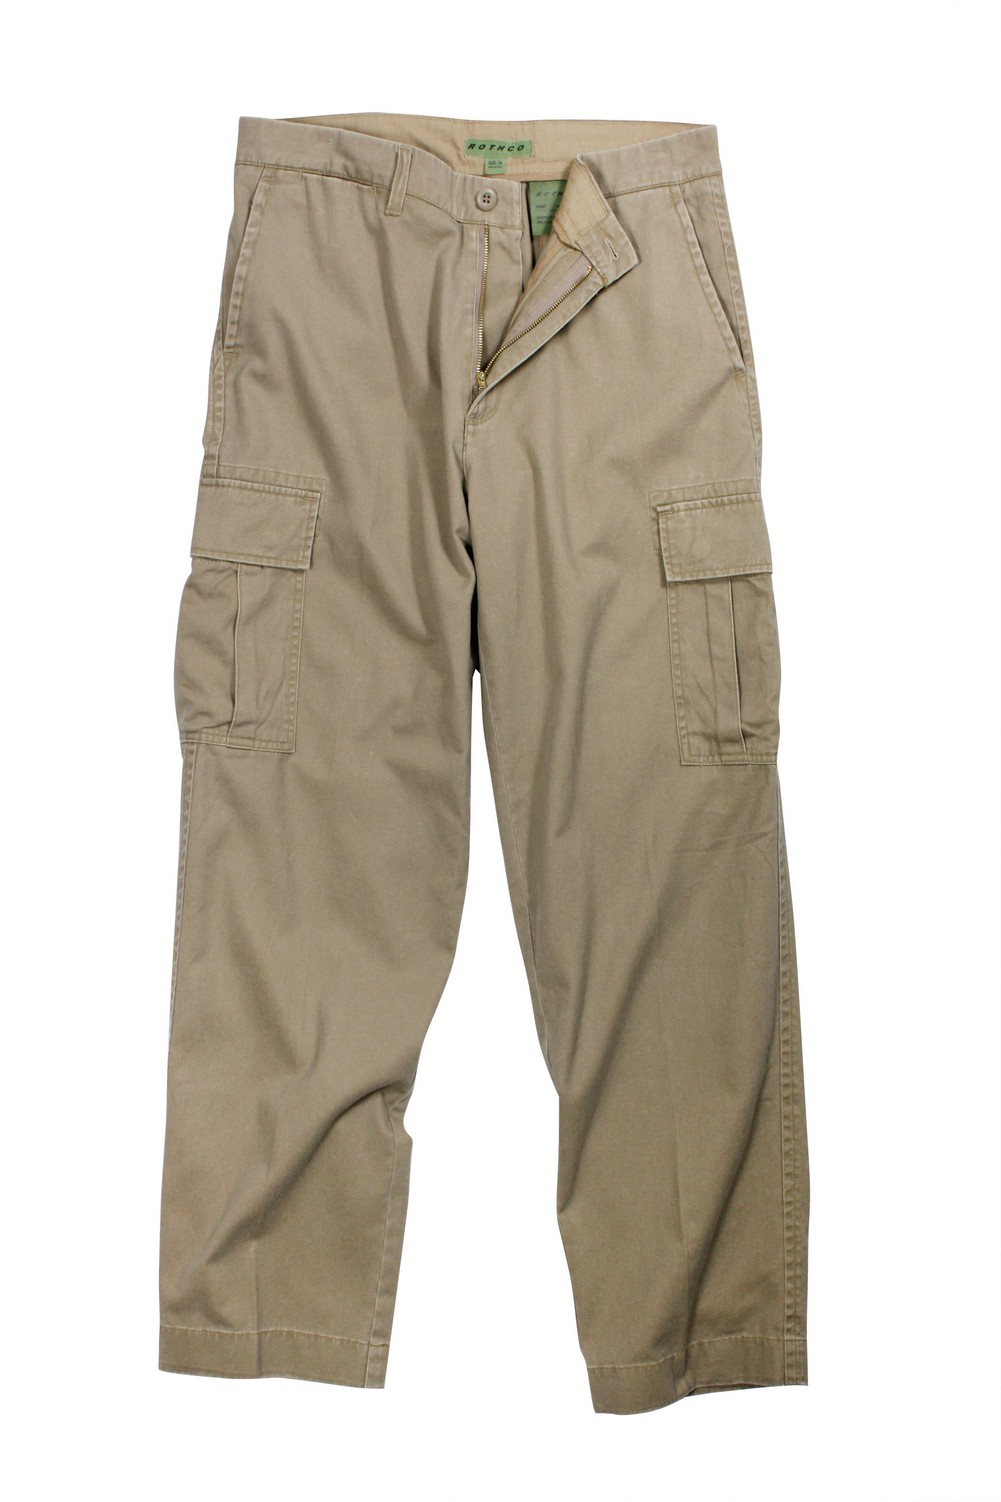 Rothco Mens Pants - Vintage Flat Front Cargo, Khaki by Rothco at Sears.com